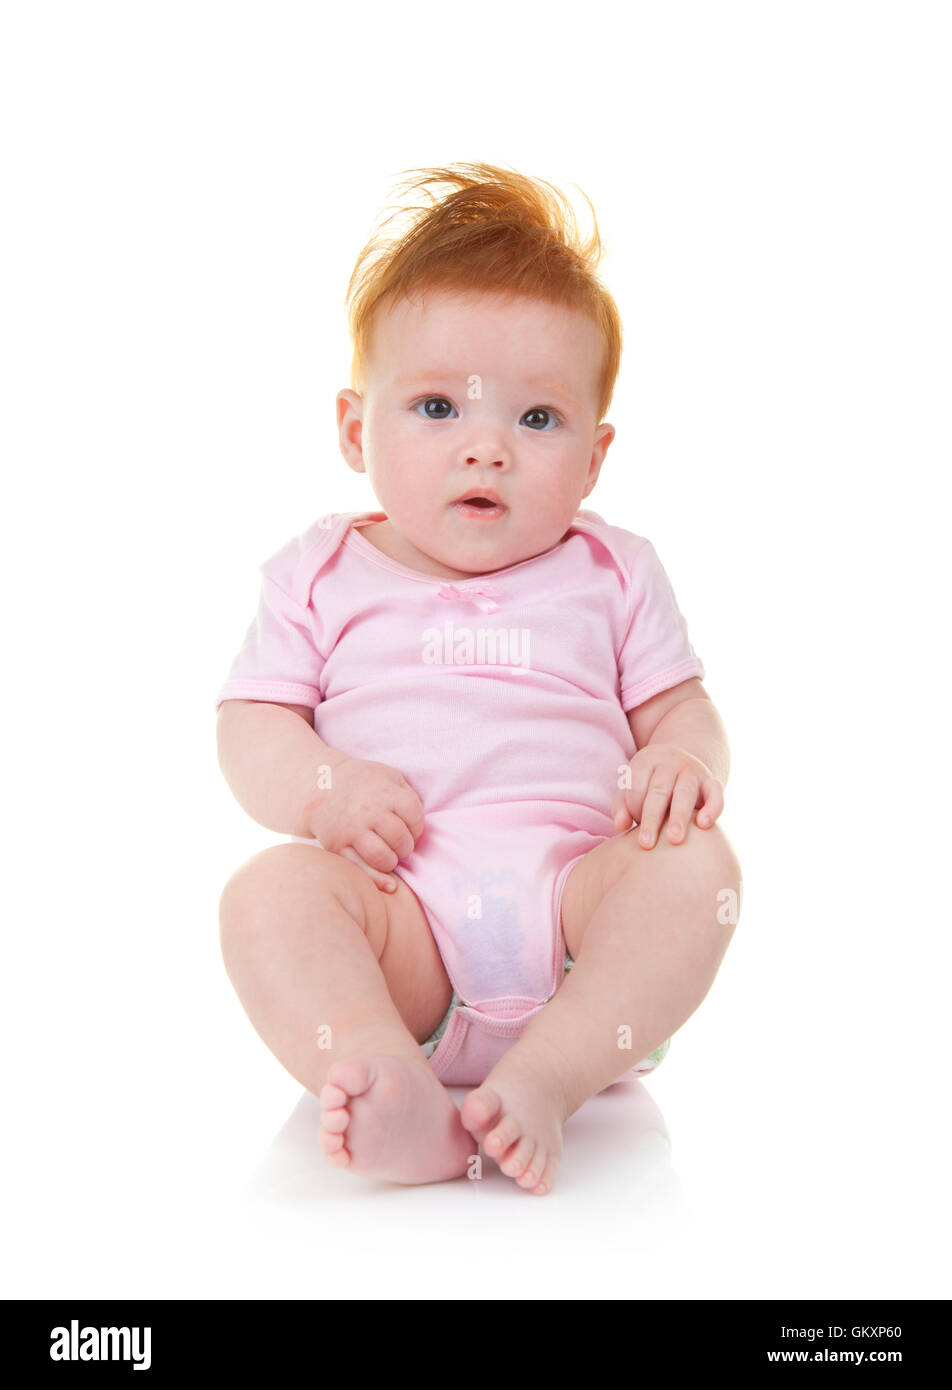 Smiling baby in pink jumpsuit sitting on the floor isolated on white background - Stock Image